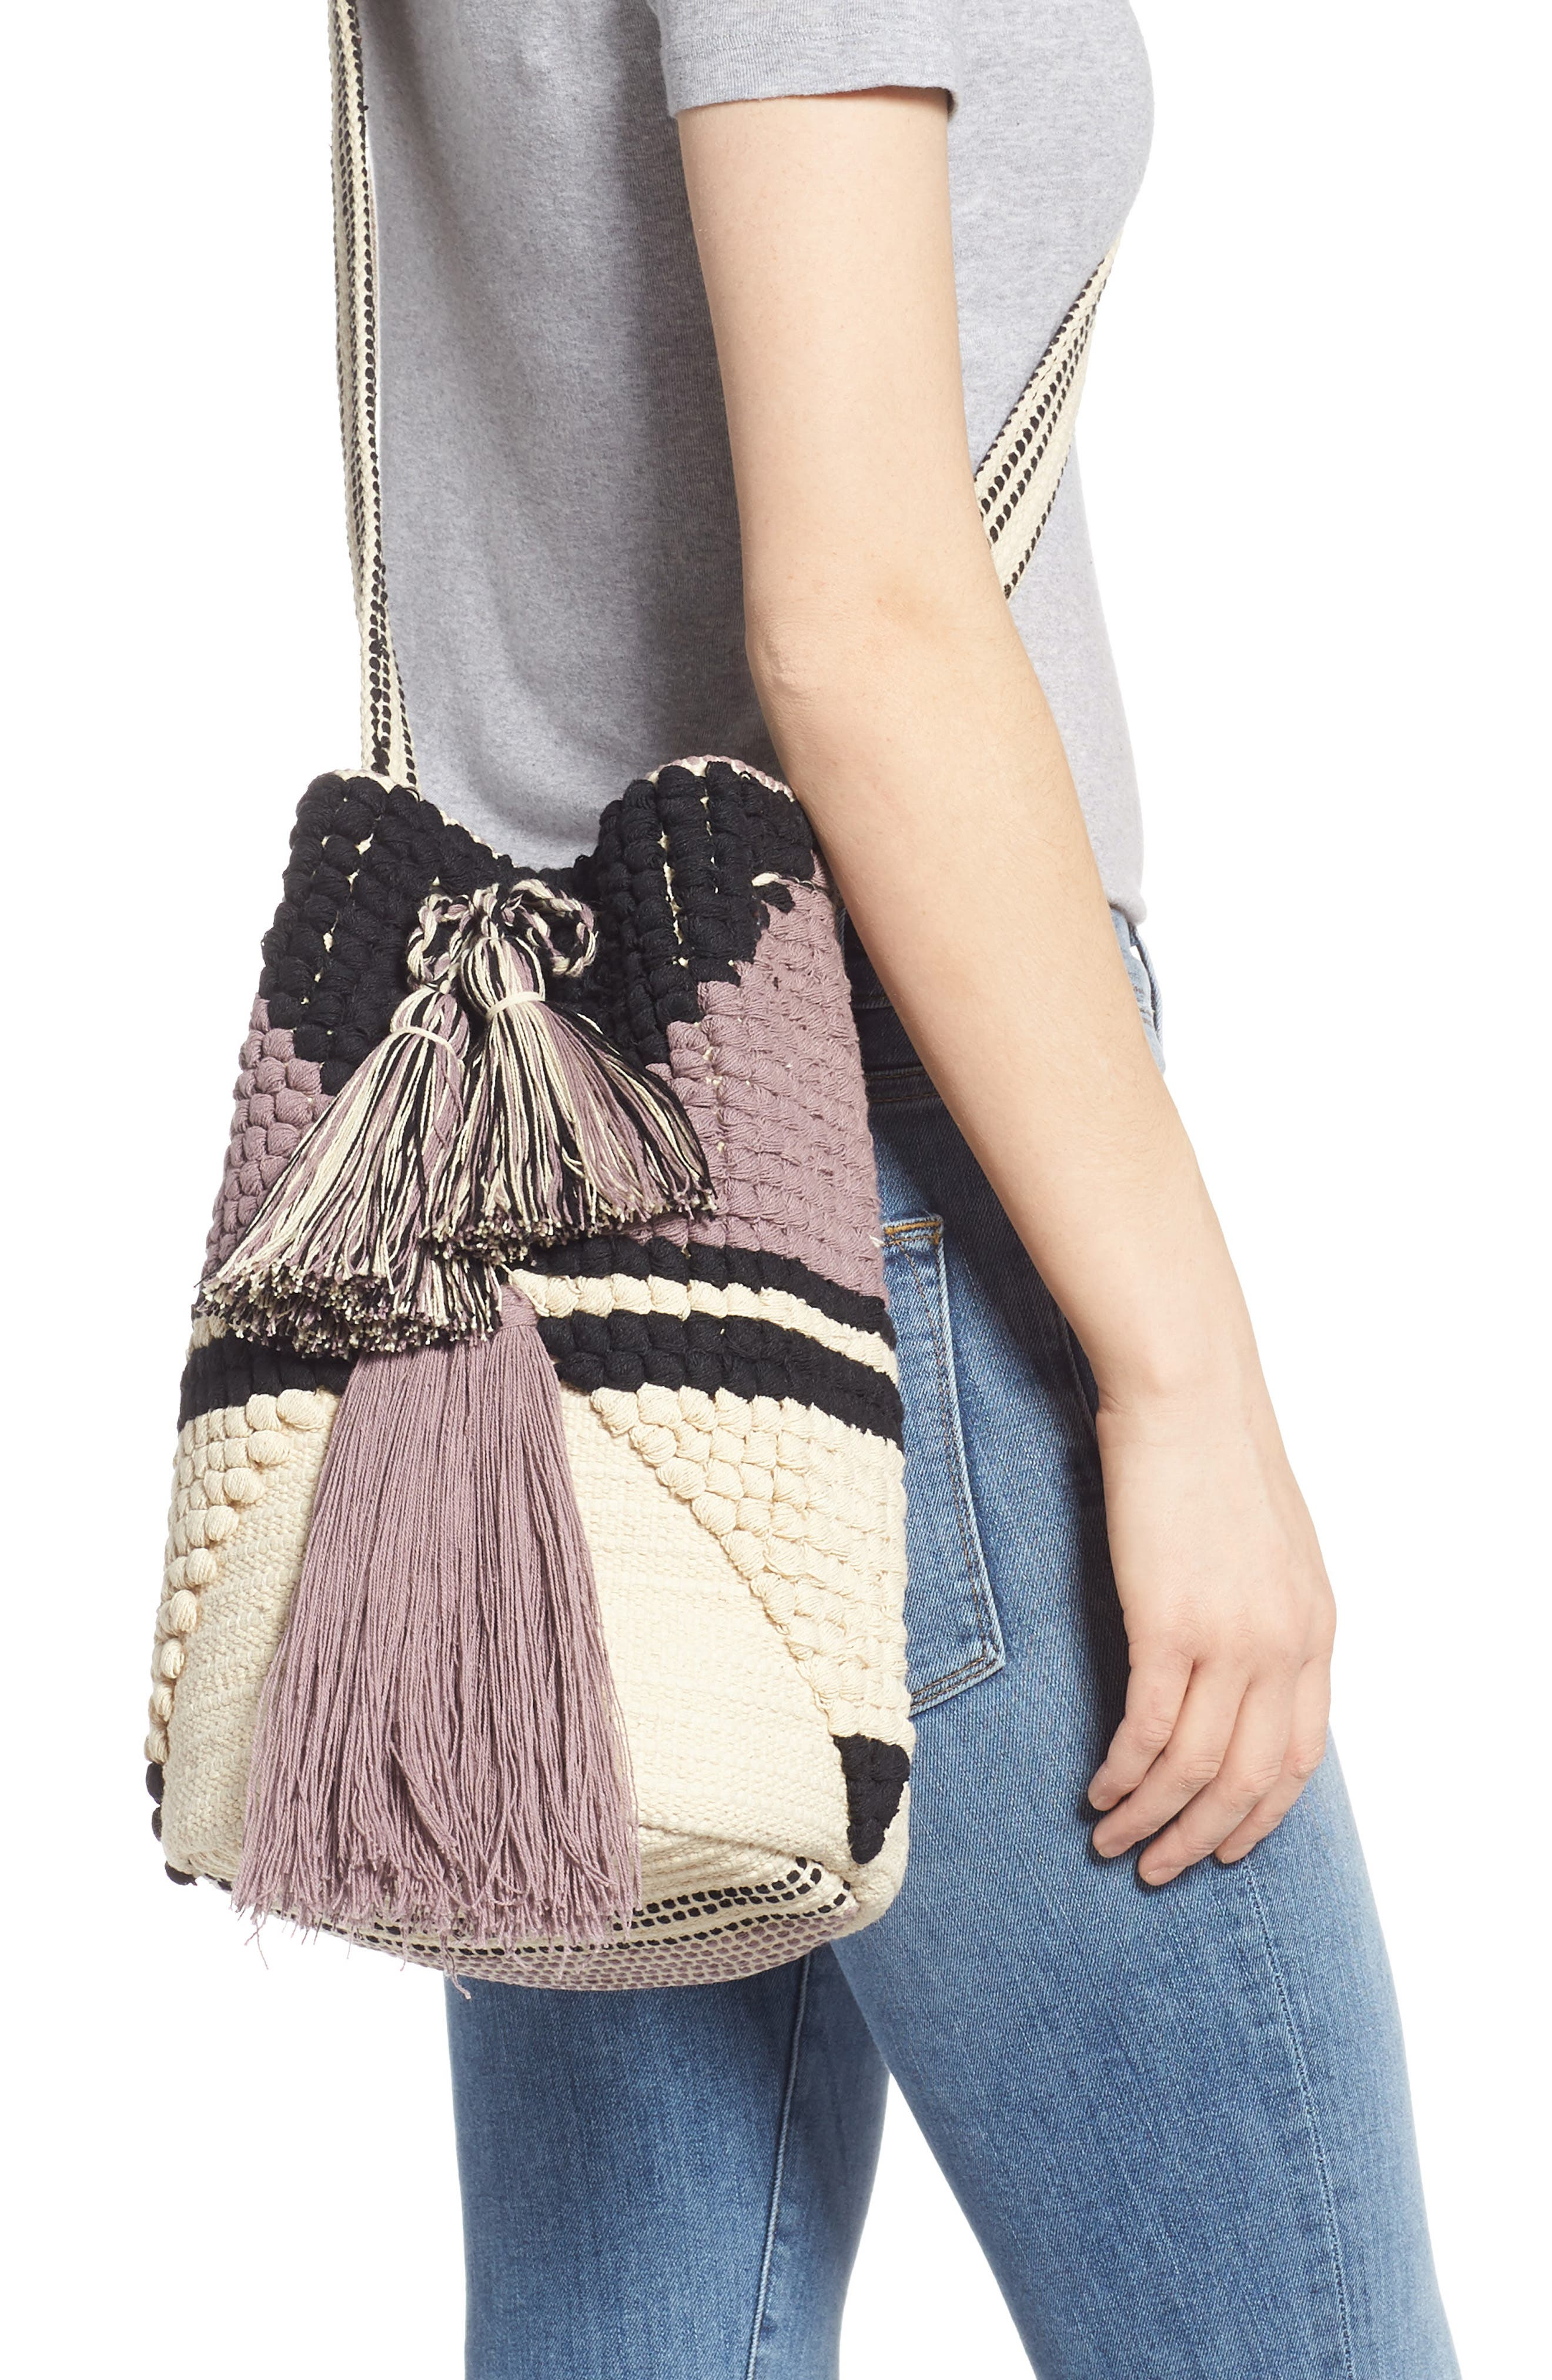 Halay Woven Bucket Bag,                             Alternate thumbnail 2, color,                             BLACK/ CREAM